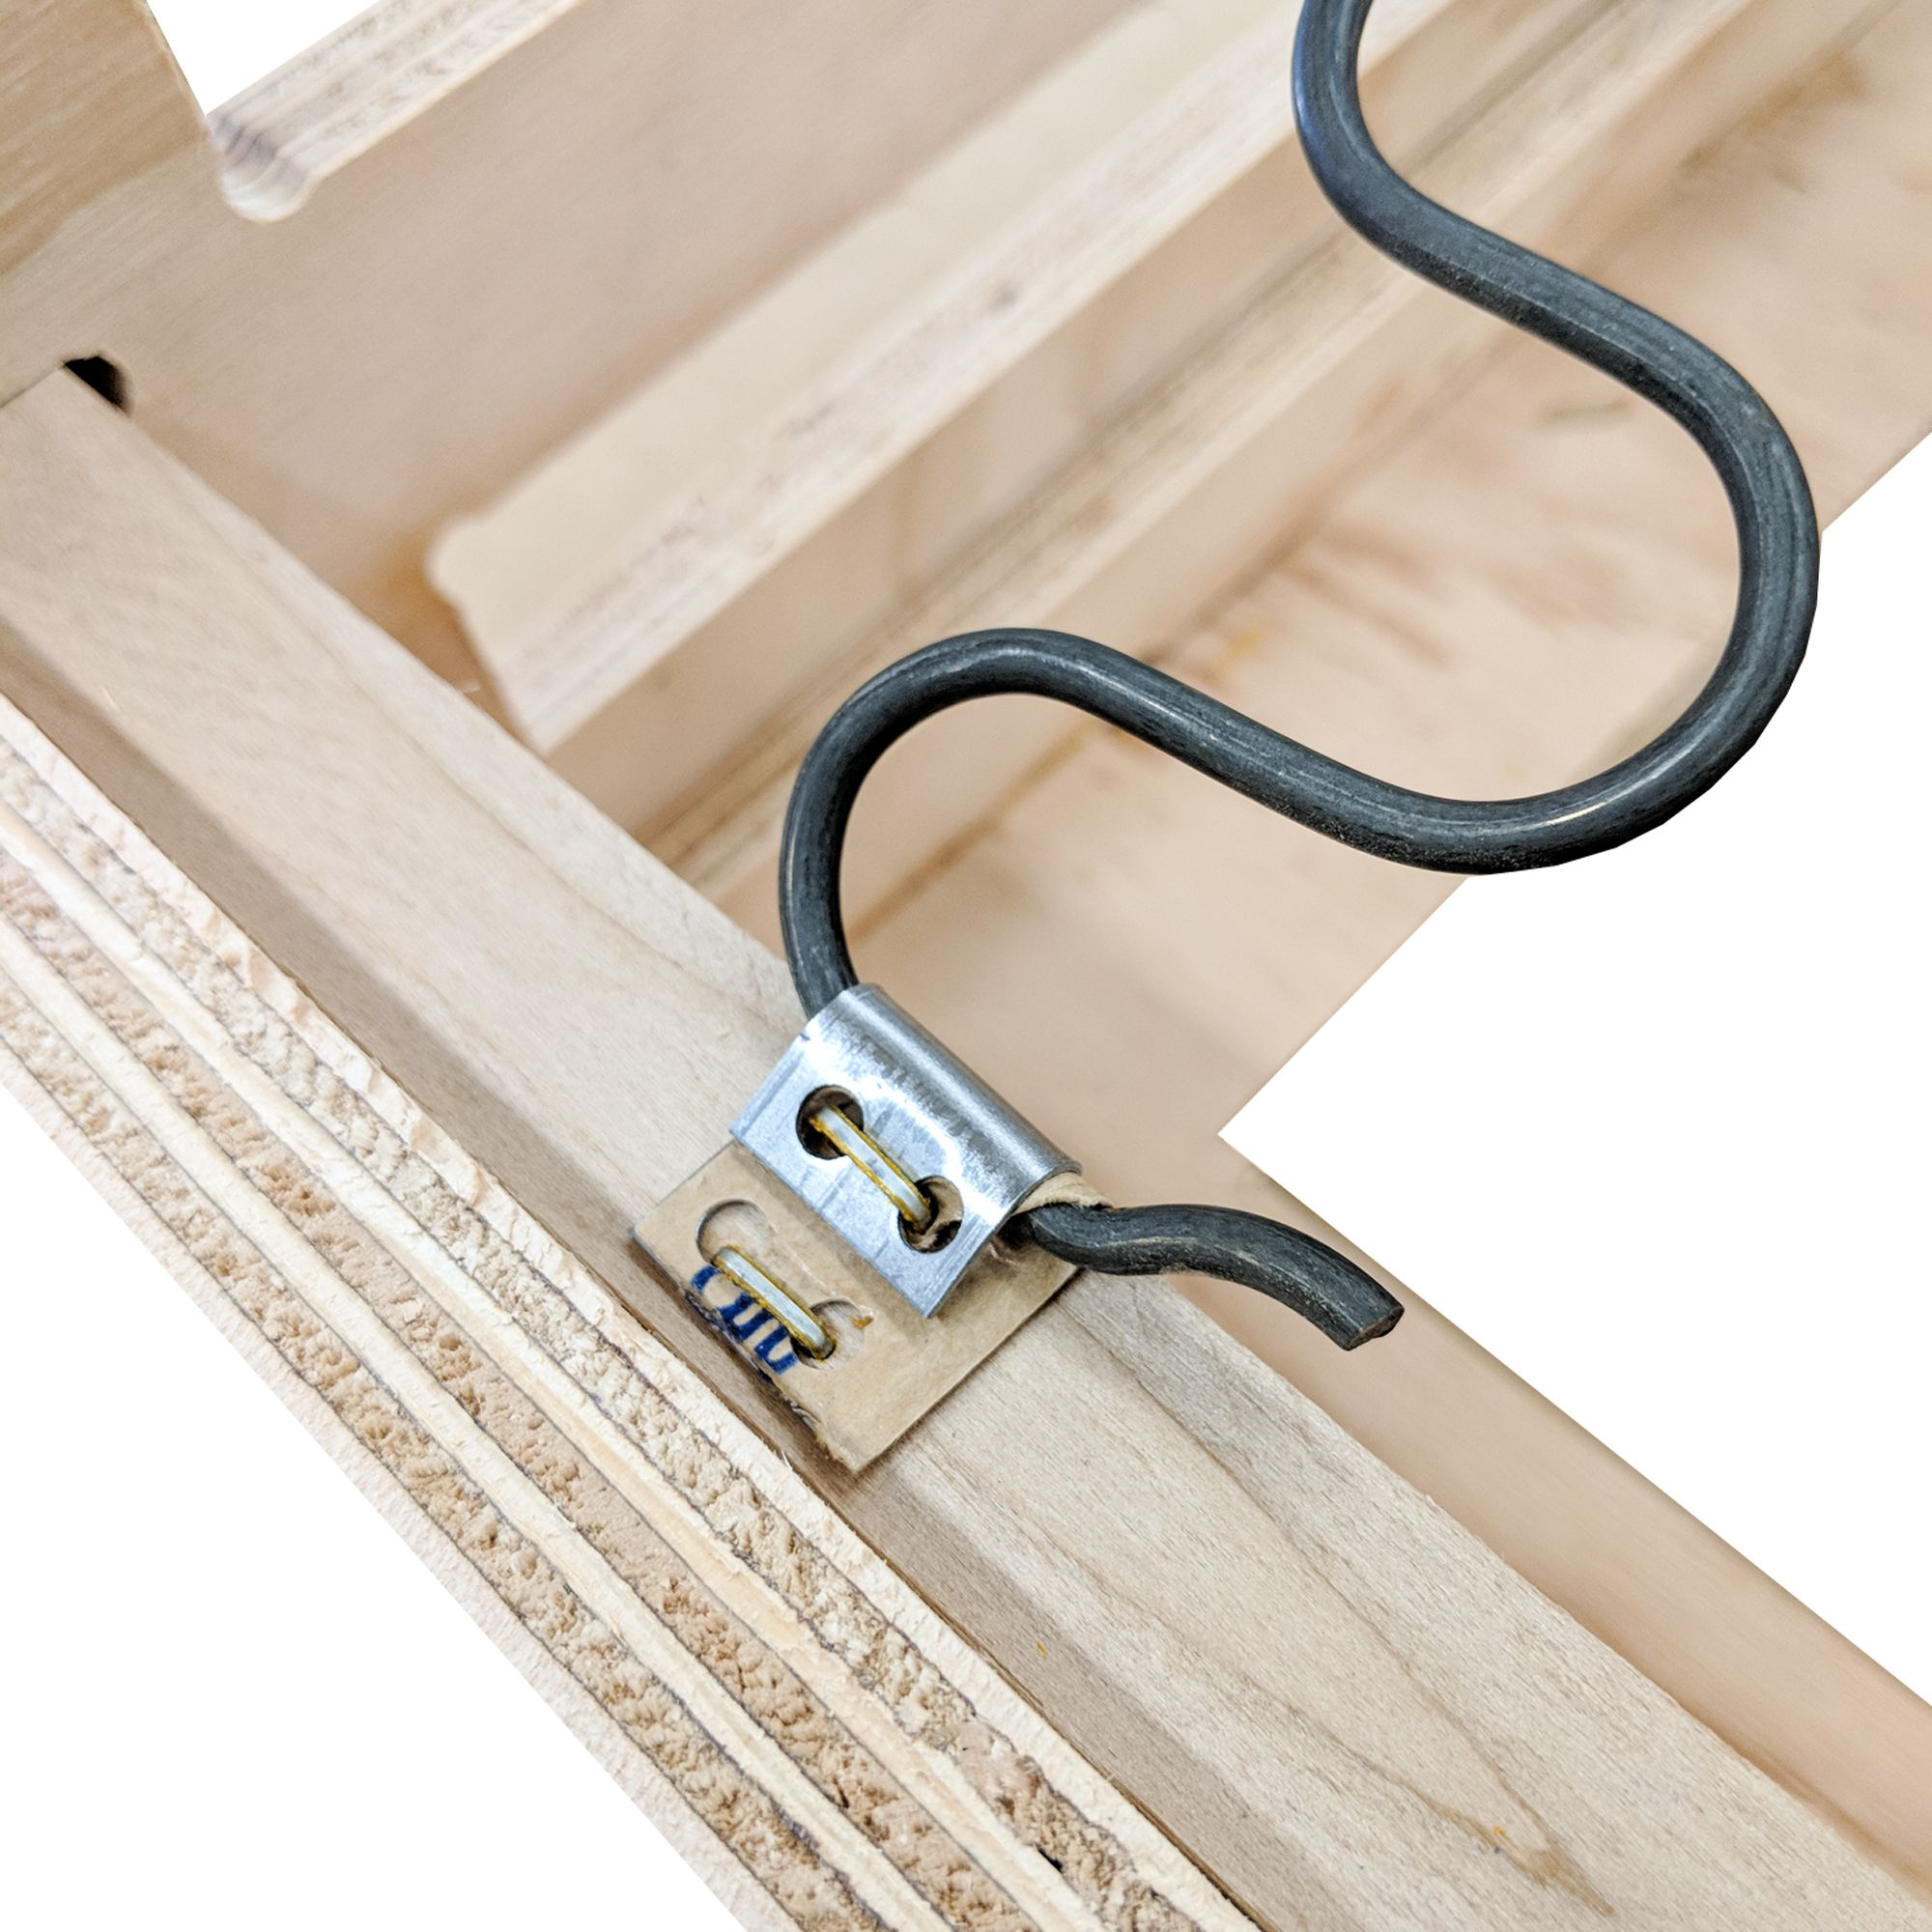 S Clips Key To Attaching Springs To Furniture Frames Upholstery Corner Sofa Design Sofa Frame